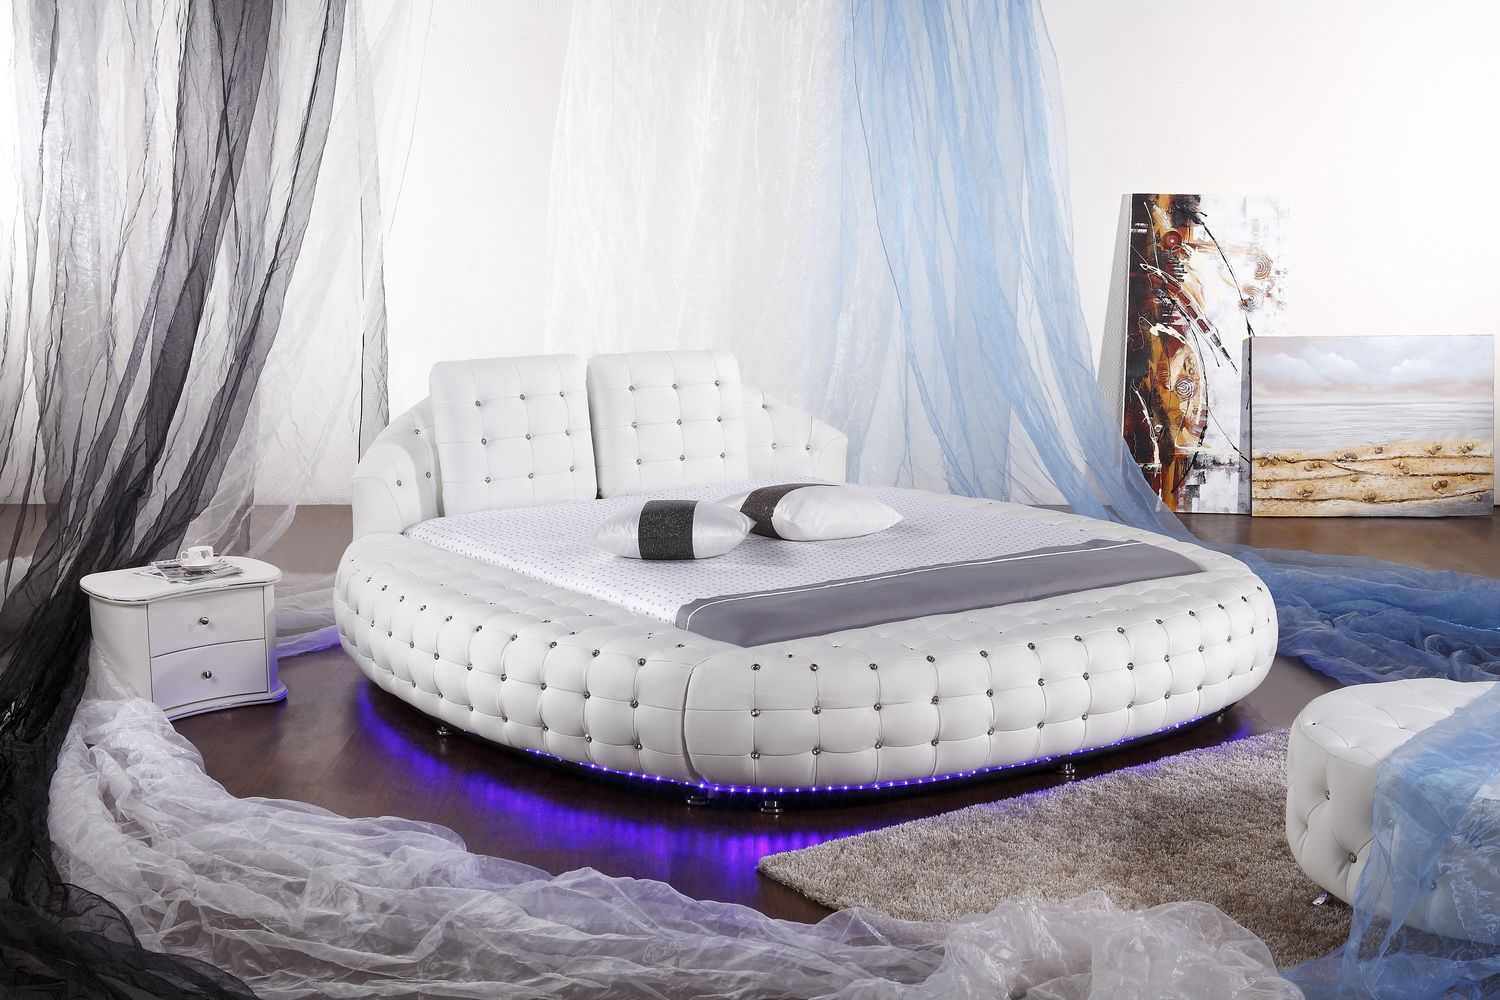 Round Bed Model 5 Round Bed Round Beds Bed Design